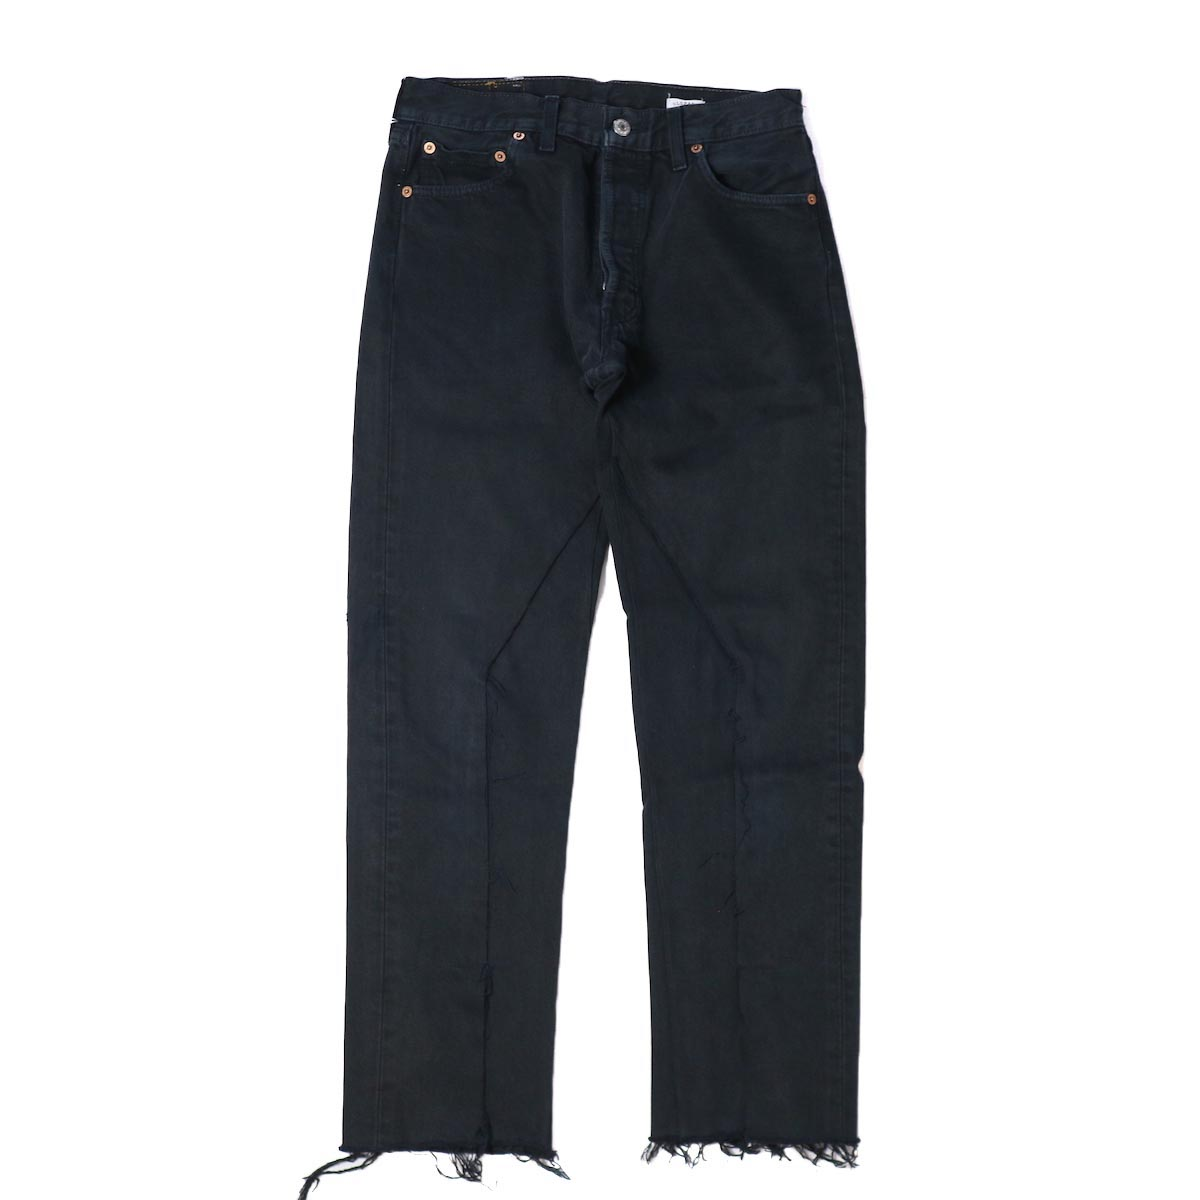 OLD PARK / SLIT JEANS BLACK Ssize -(E)